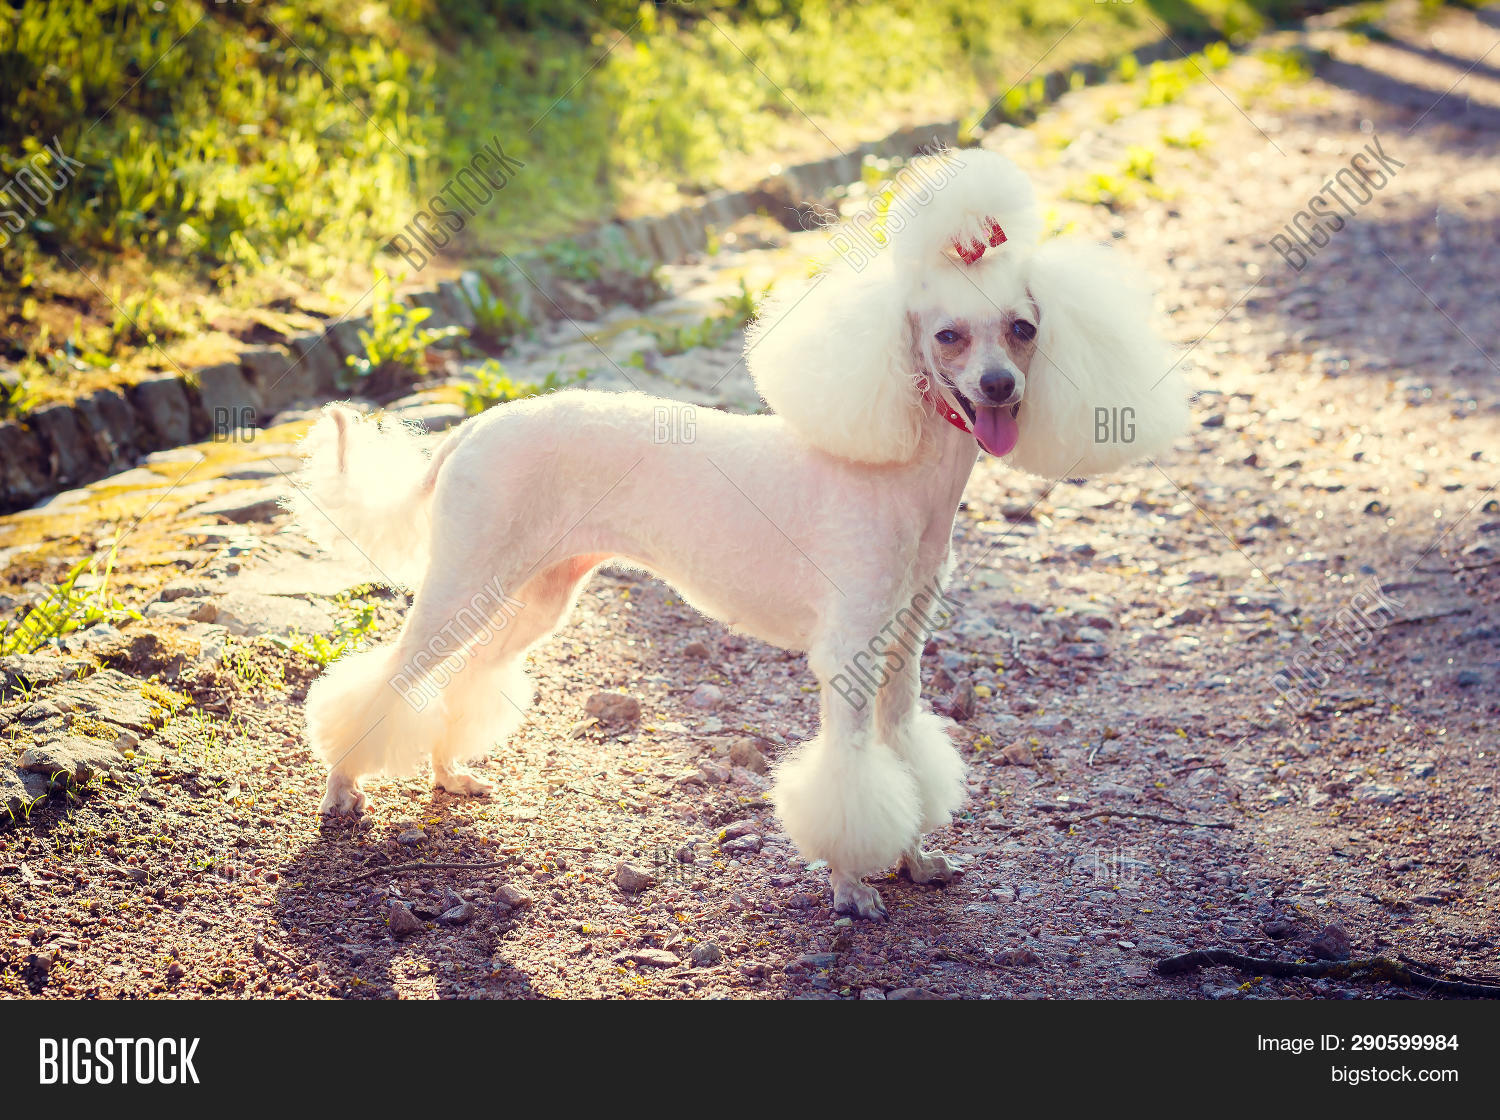 Stupendous Dog Poodle Haircut Image Photo Free Trial Bigstock Natural Hairstyles Runnerswayorg